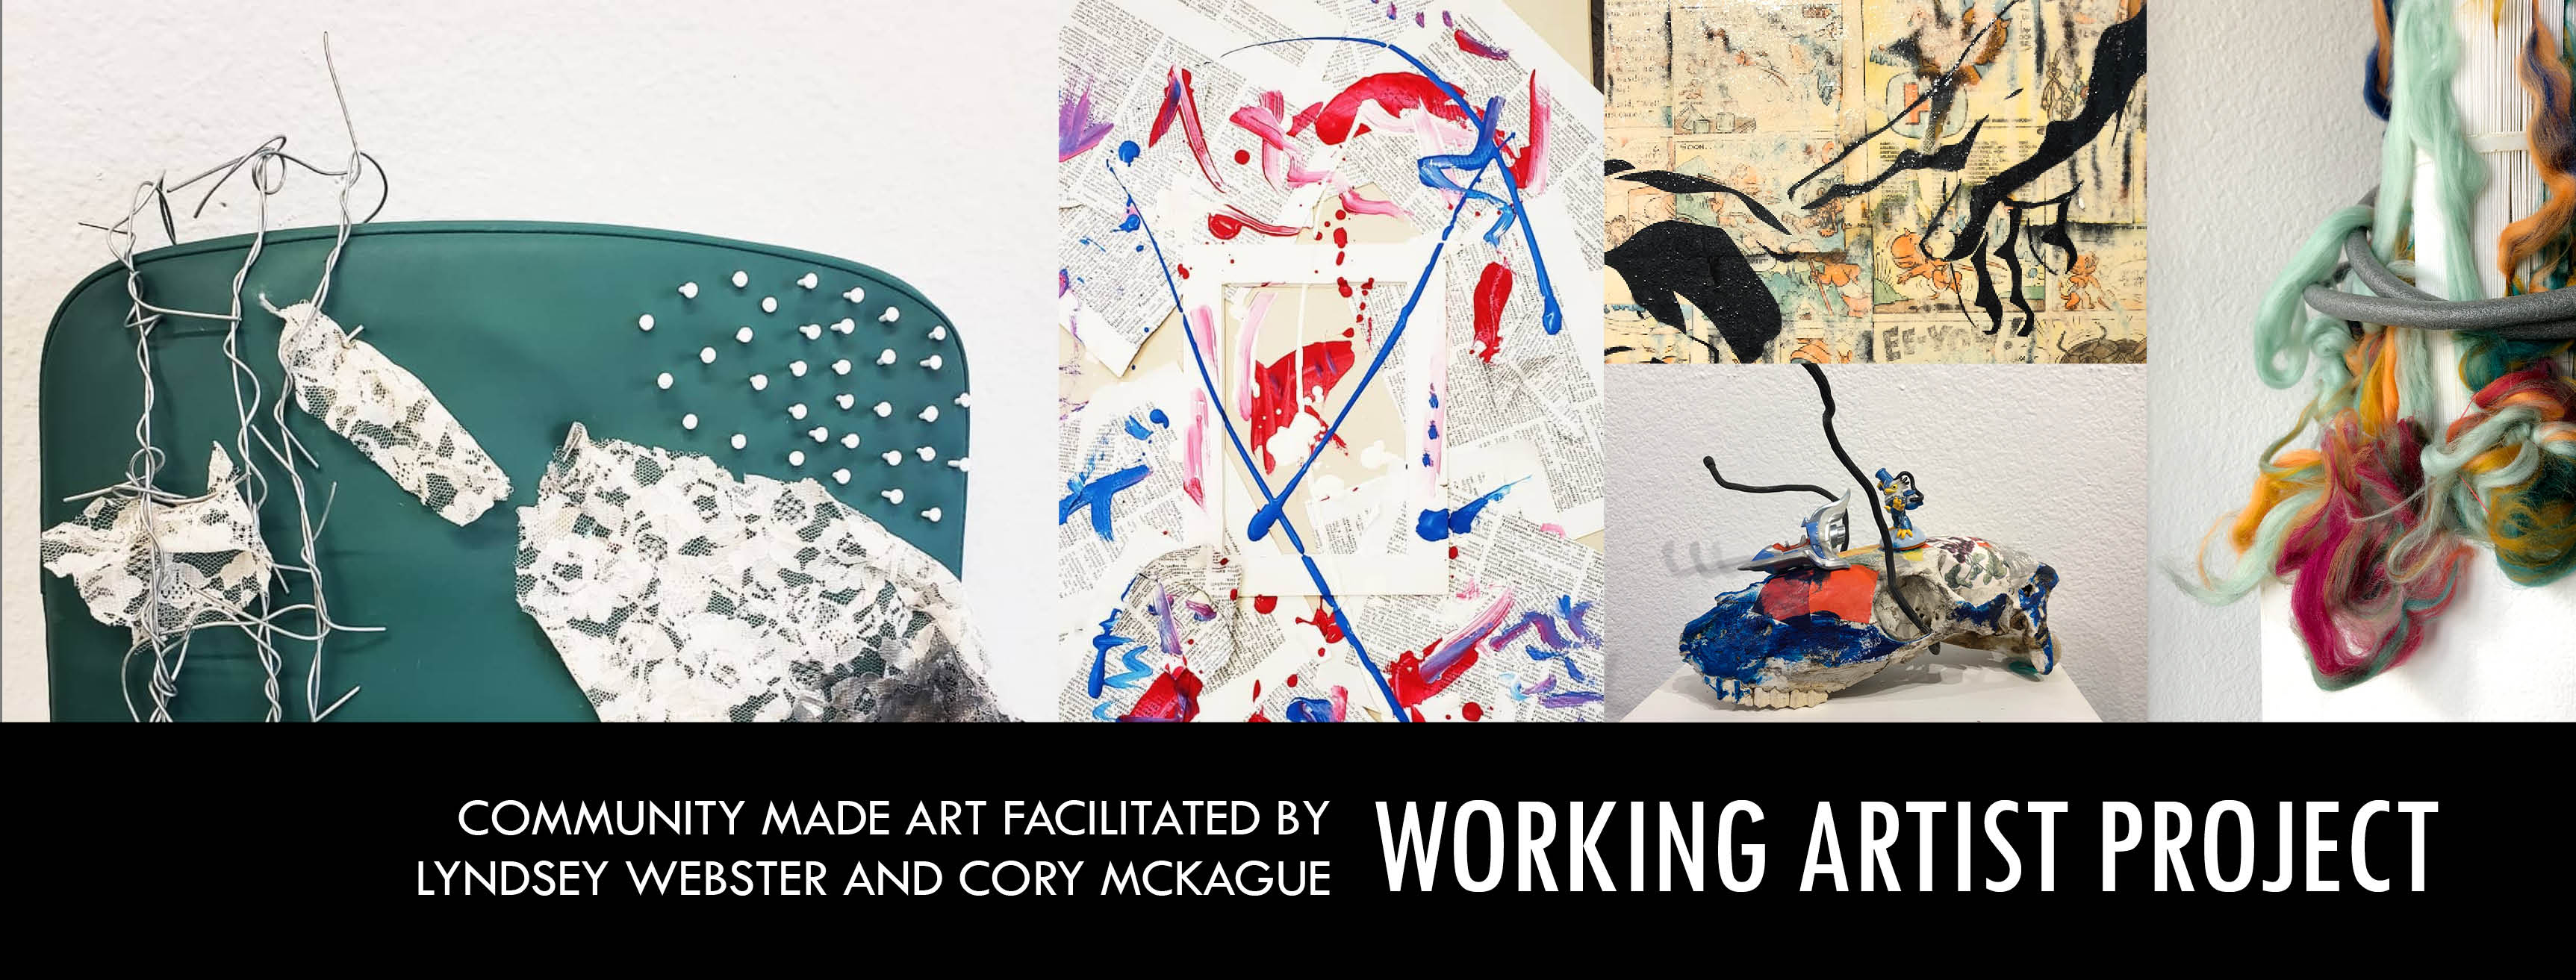 Working Artist Project